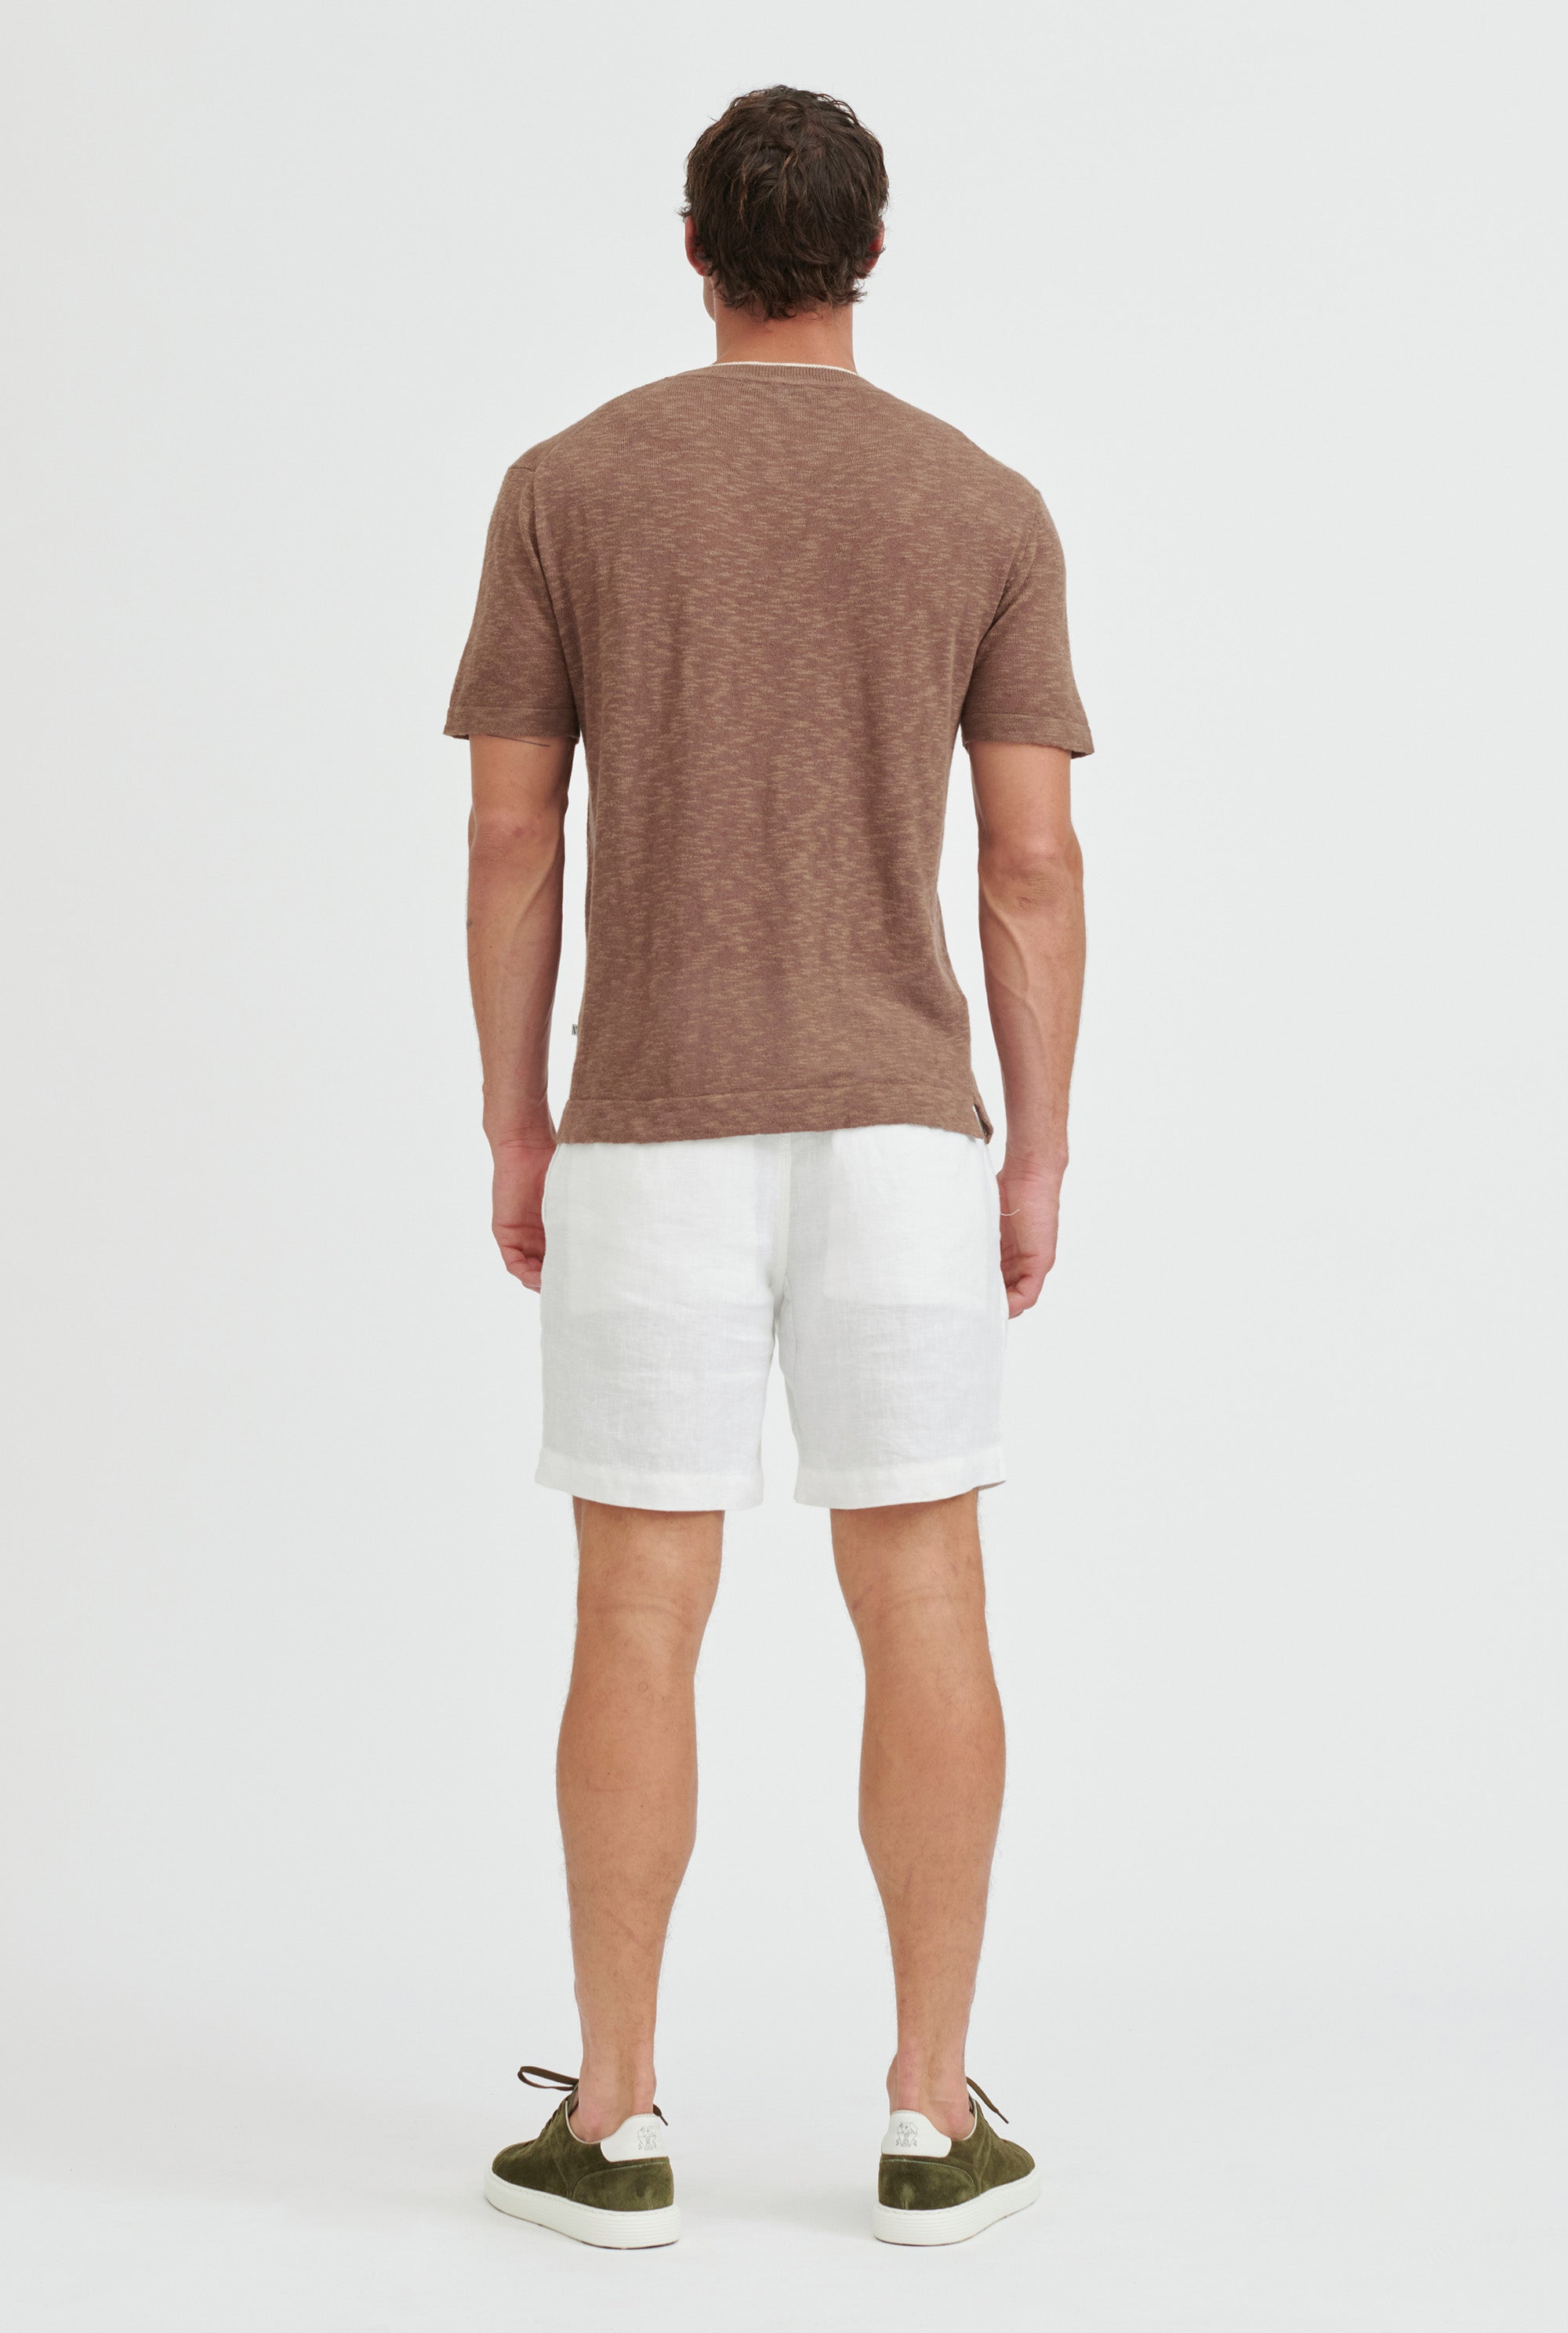 Knitted Slub T-Shirt - Cacao/Sand Trim